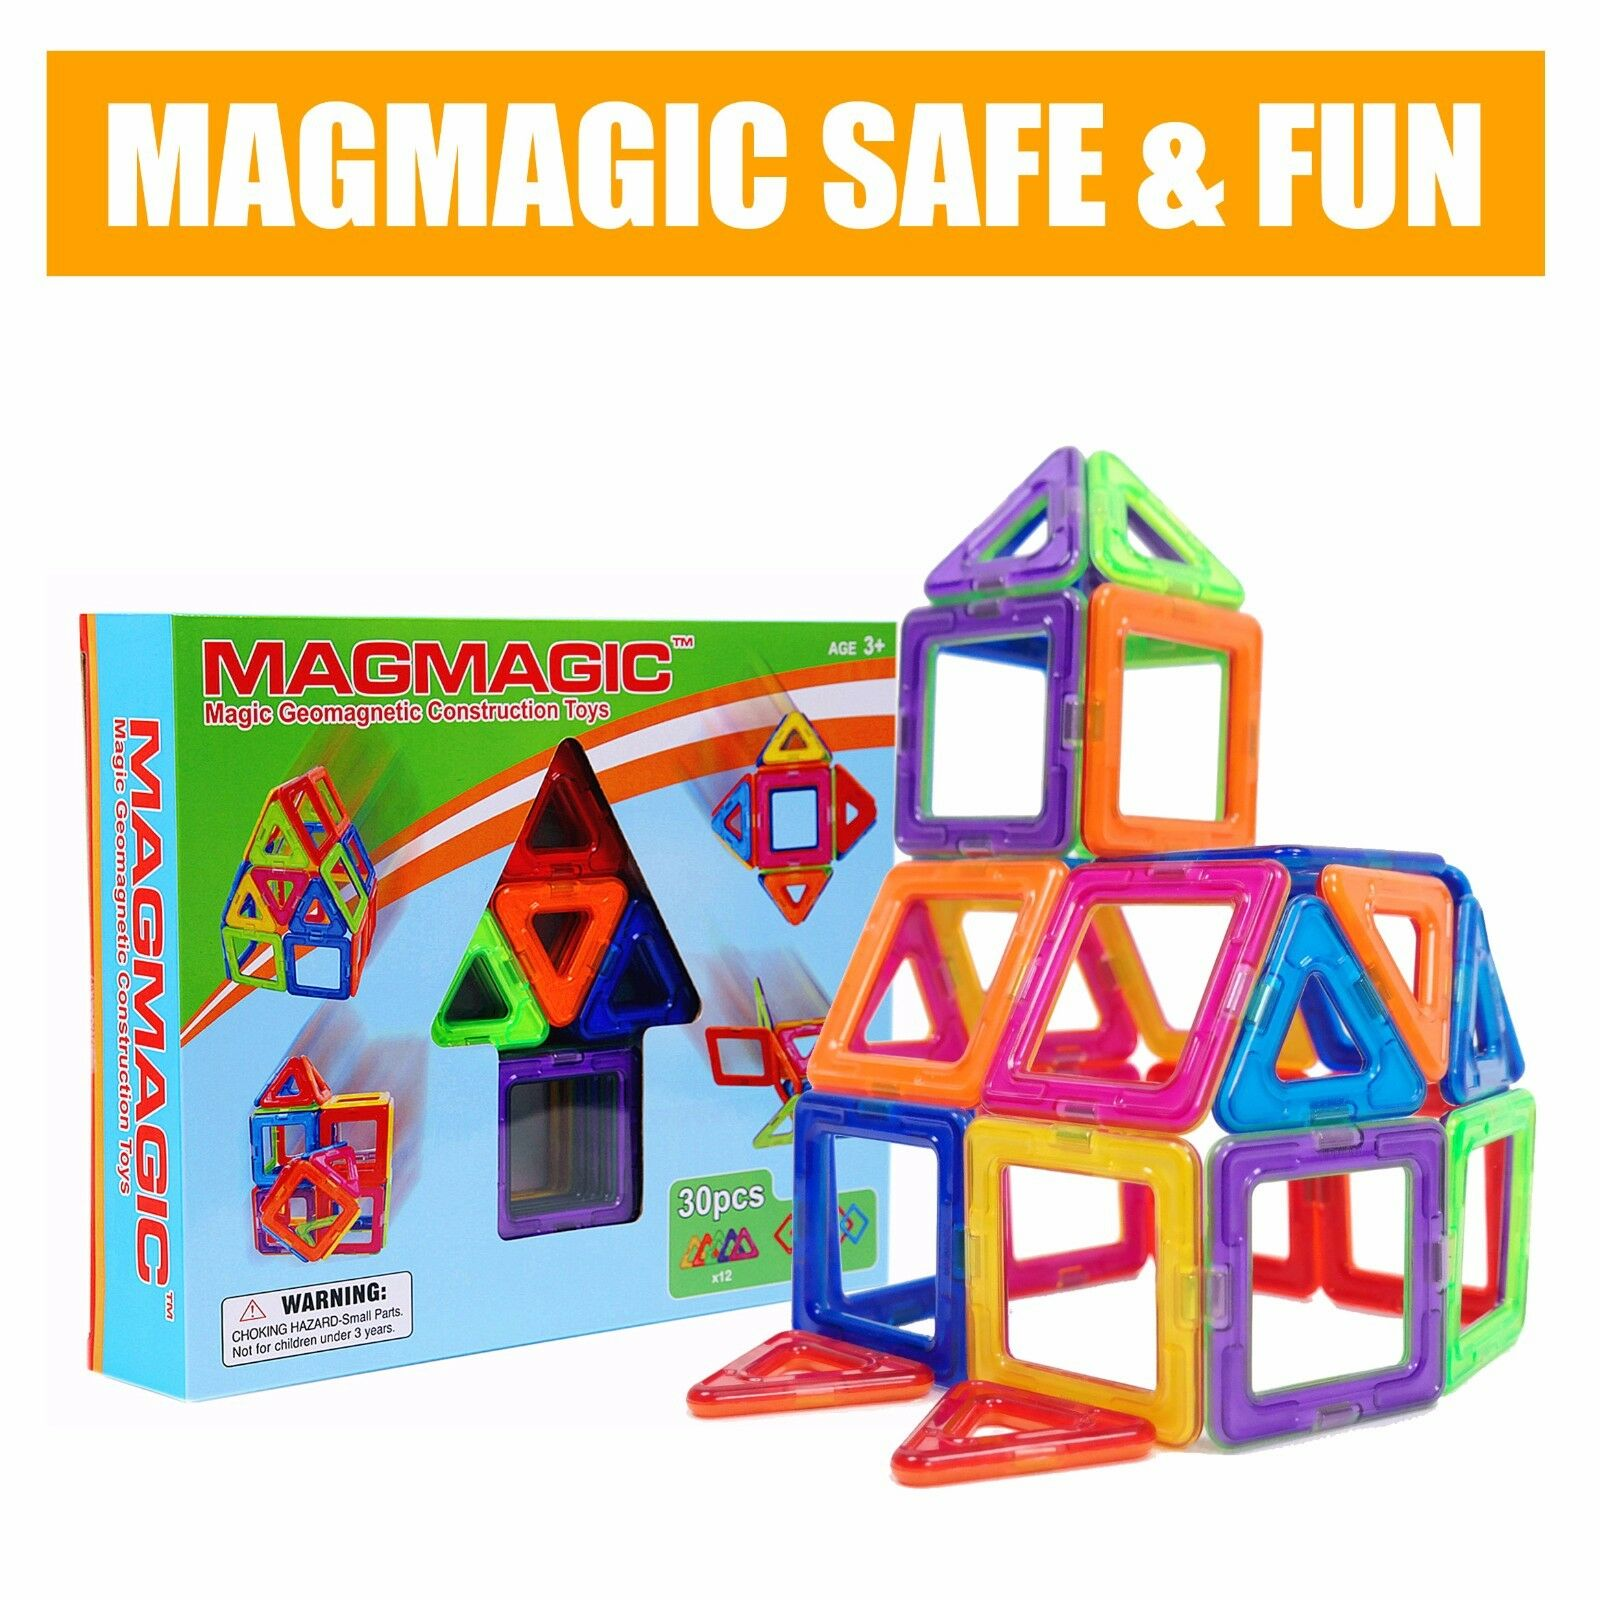 Magmagic 30pcs Magnetic Construction Building Set Toys Magnets Toy